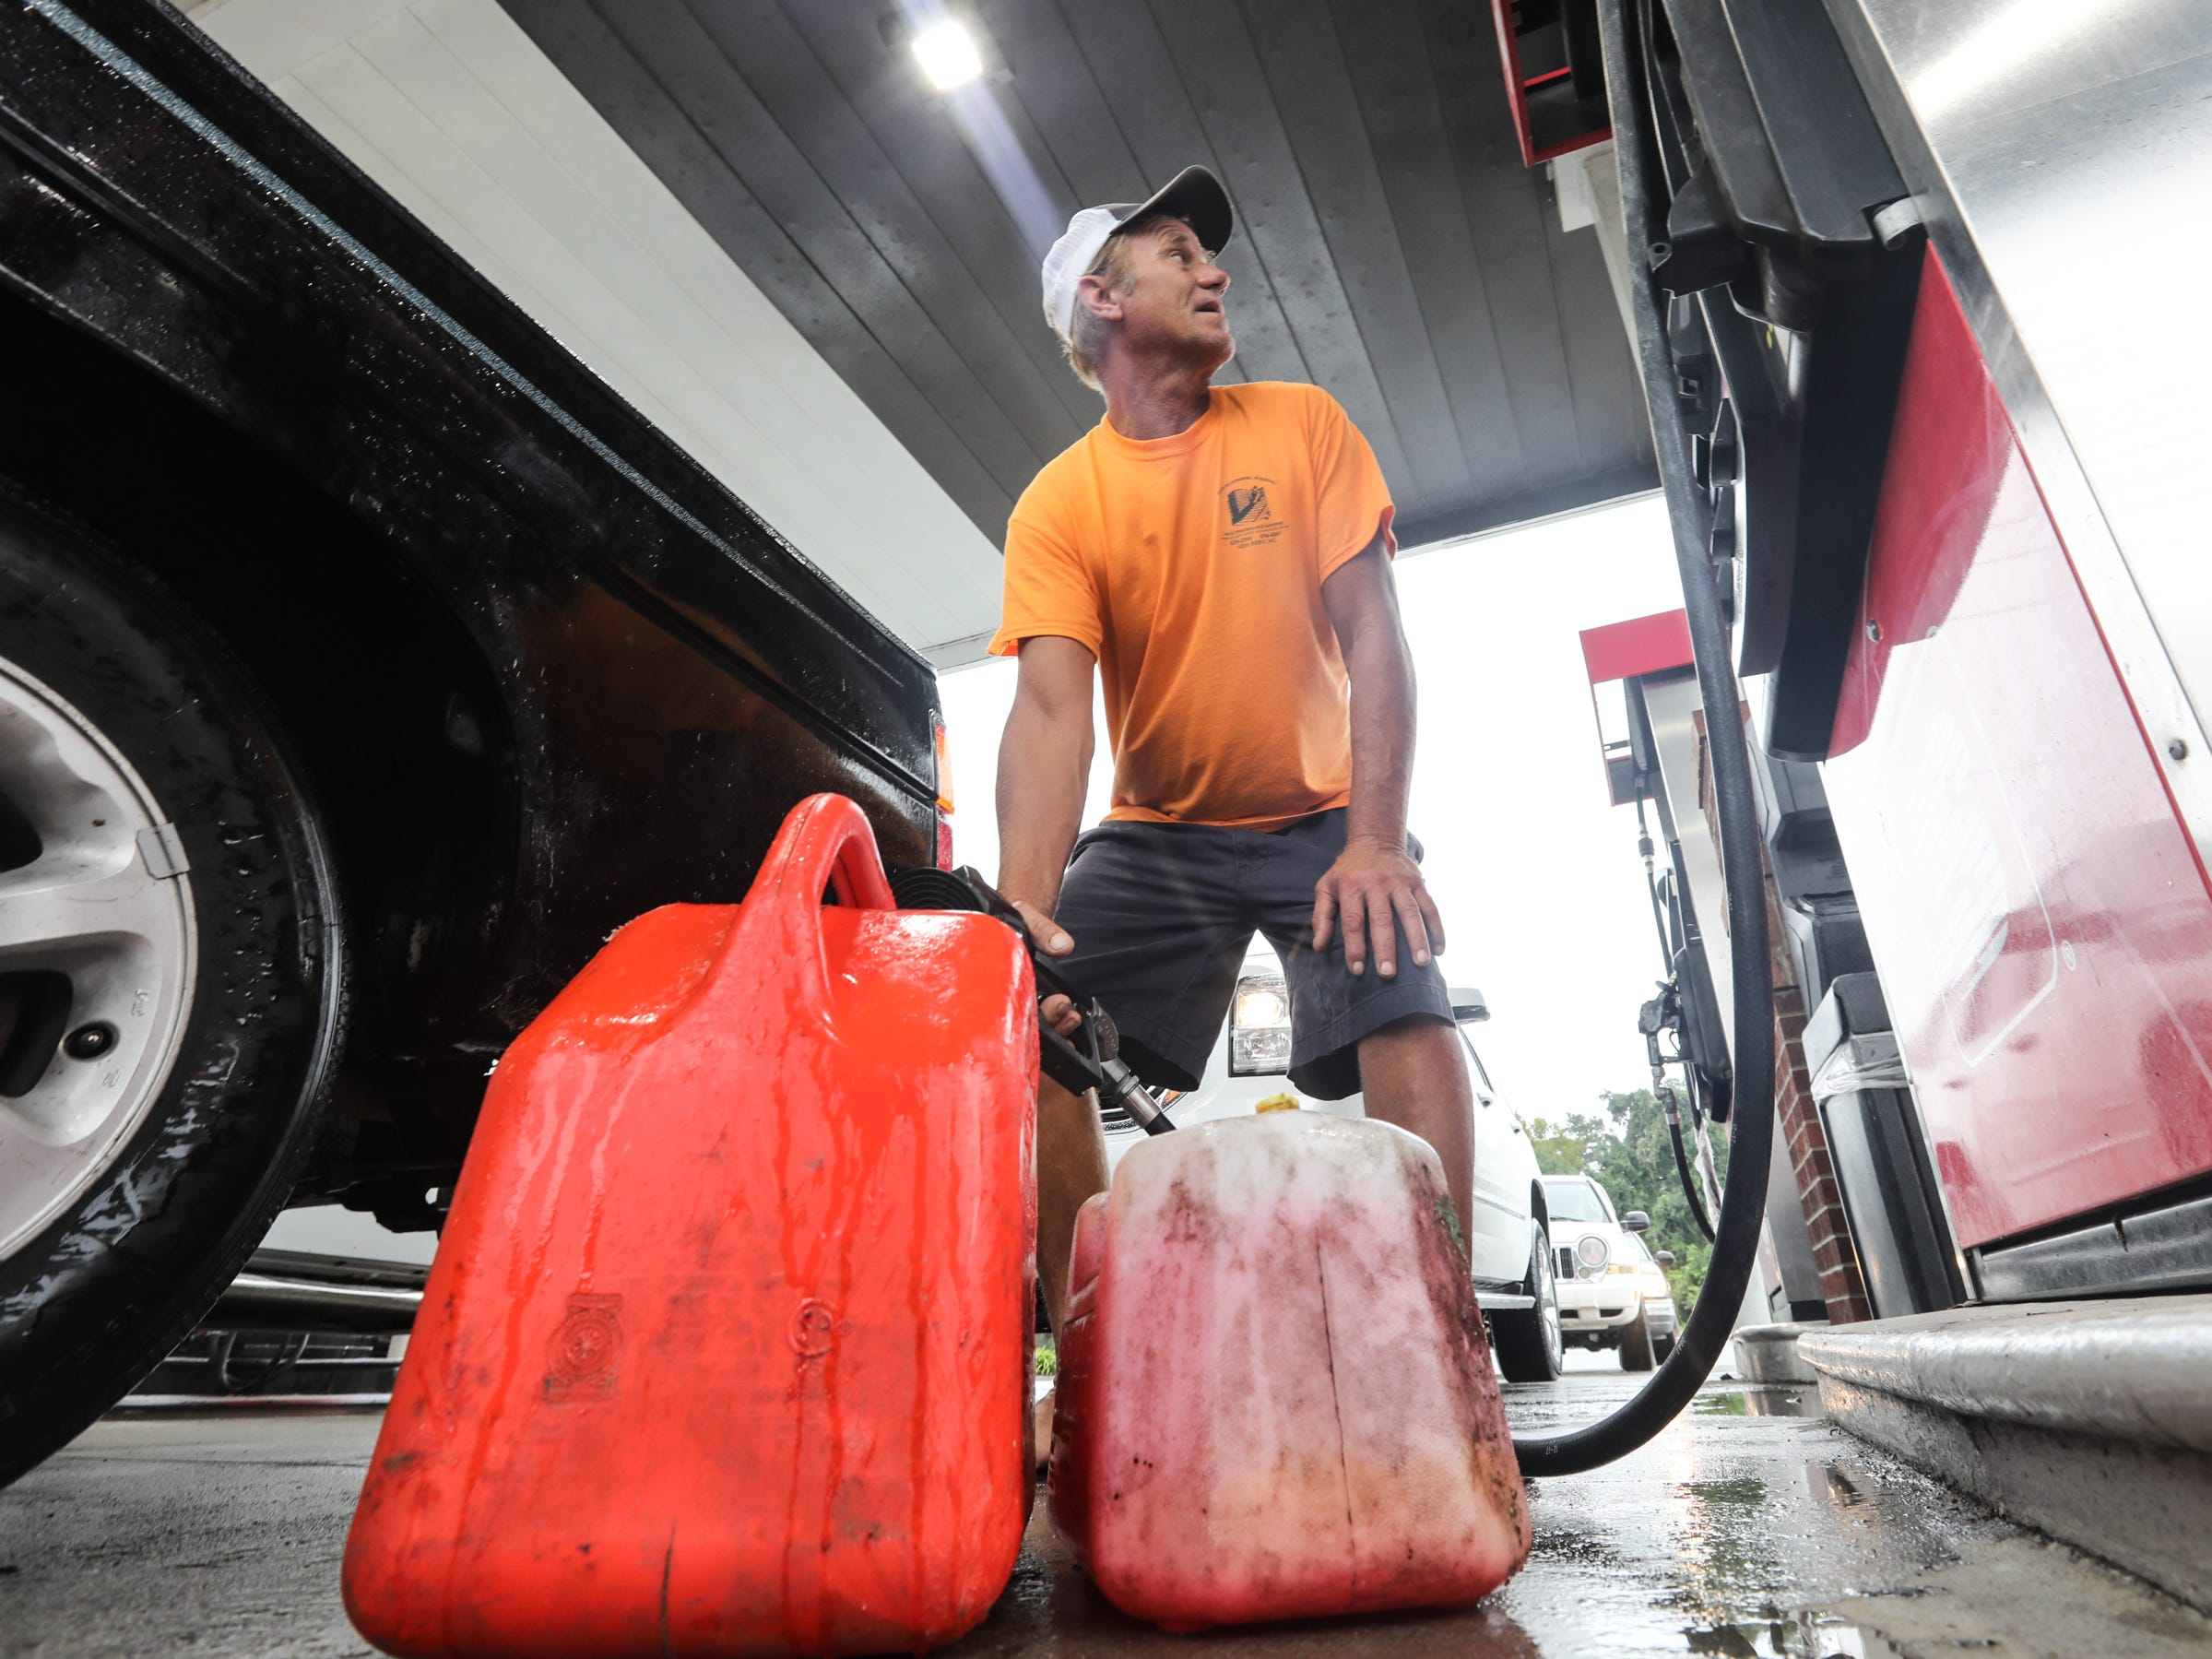 George Bloomberg fills gas cans at a gas station in Bridgeton, N.C. on Sunday, Sept. 16, 2018.